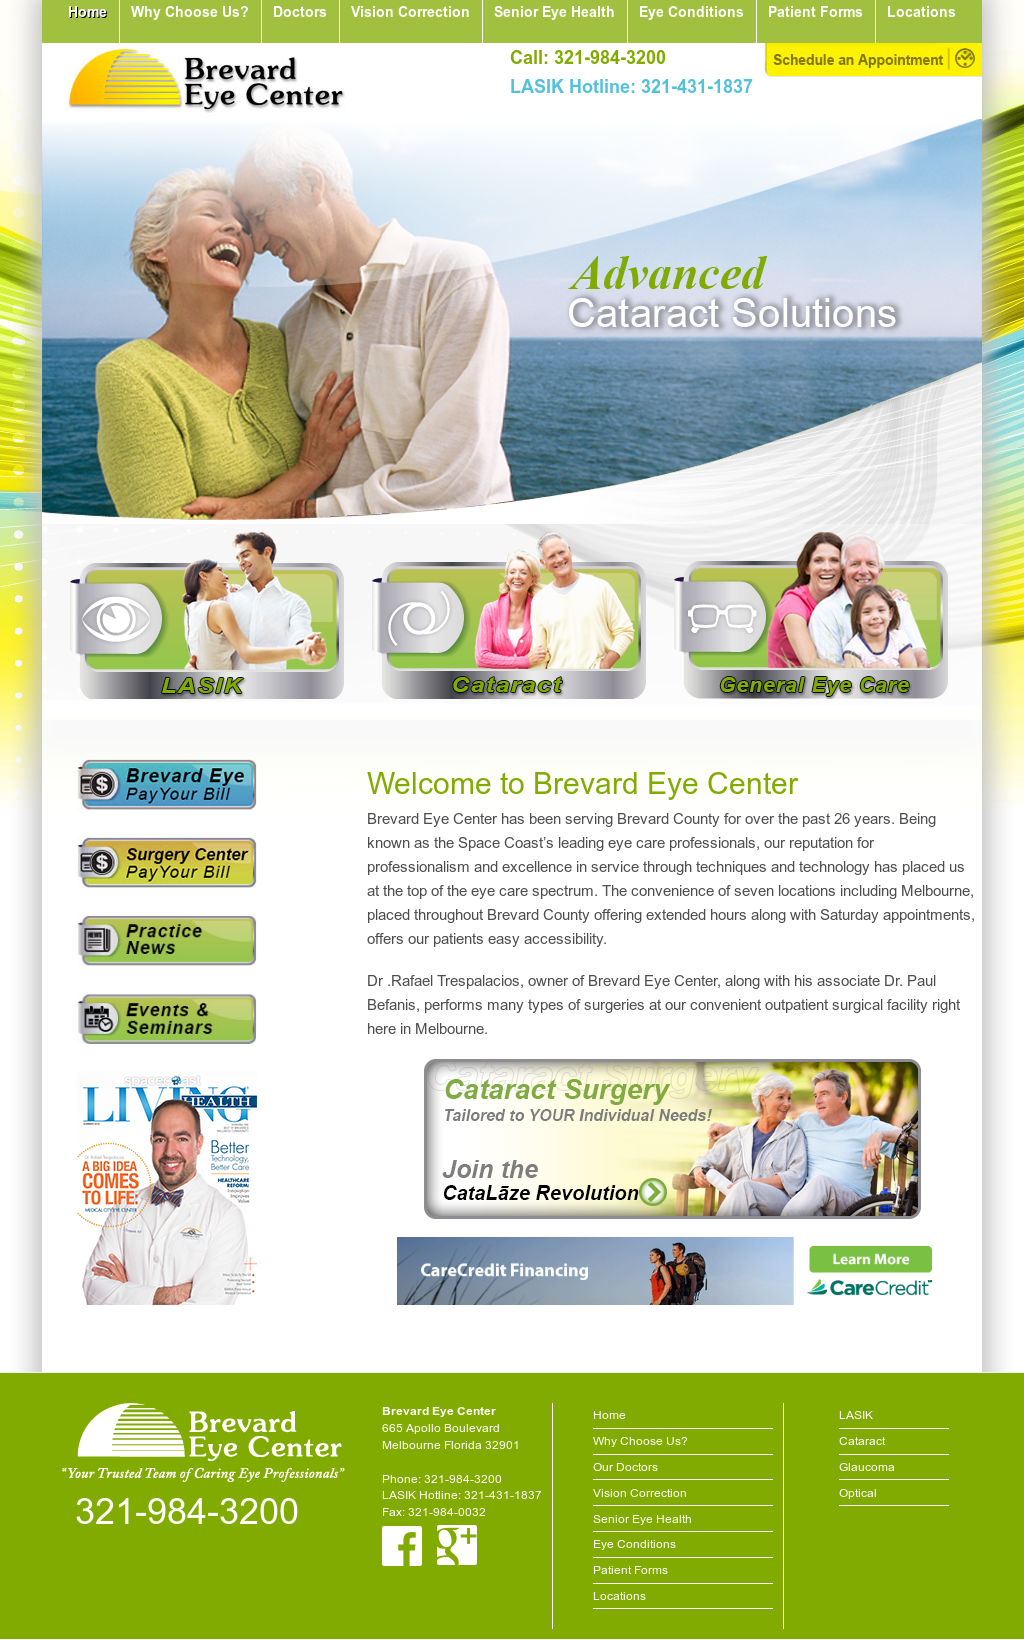 Brevard Eye Center Competitors, Revenue and Employees - Owler